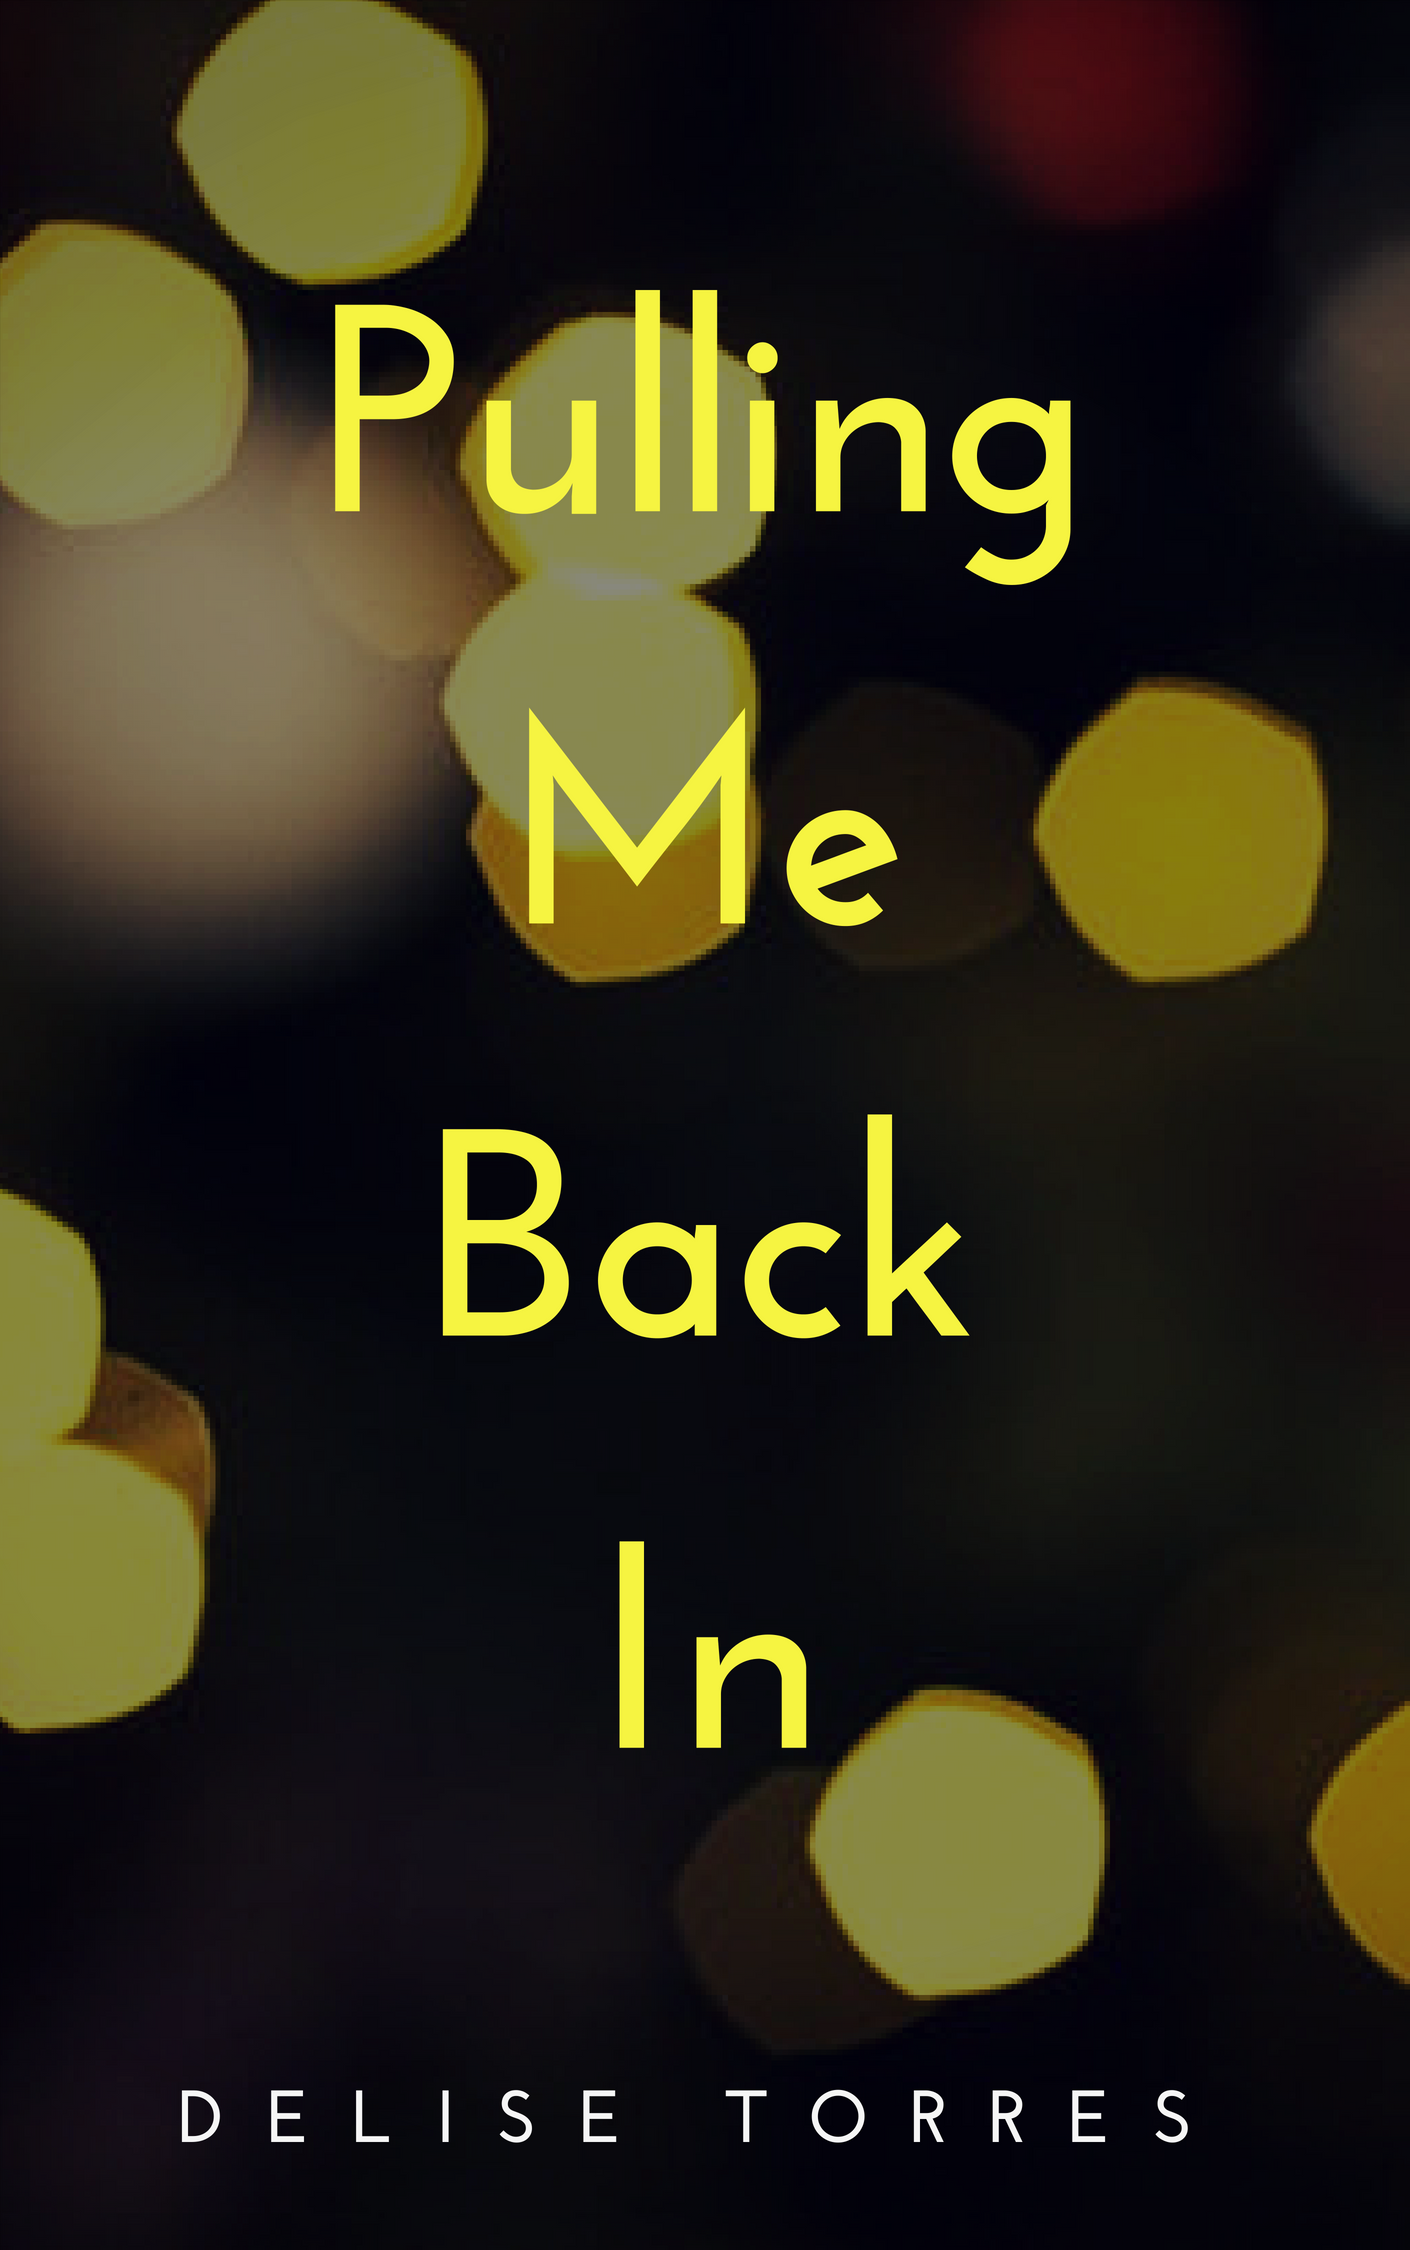 Pulling Me Back In Cover